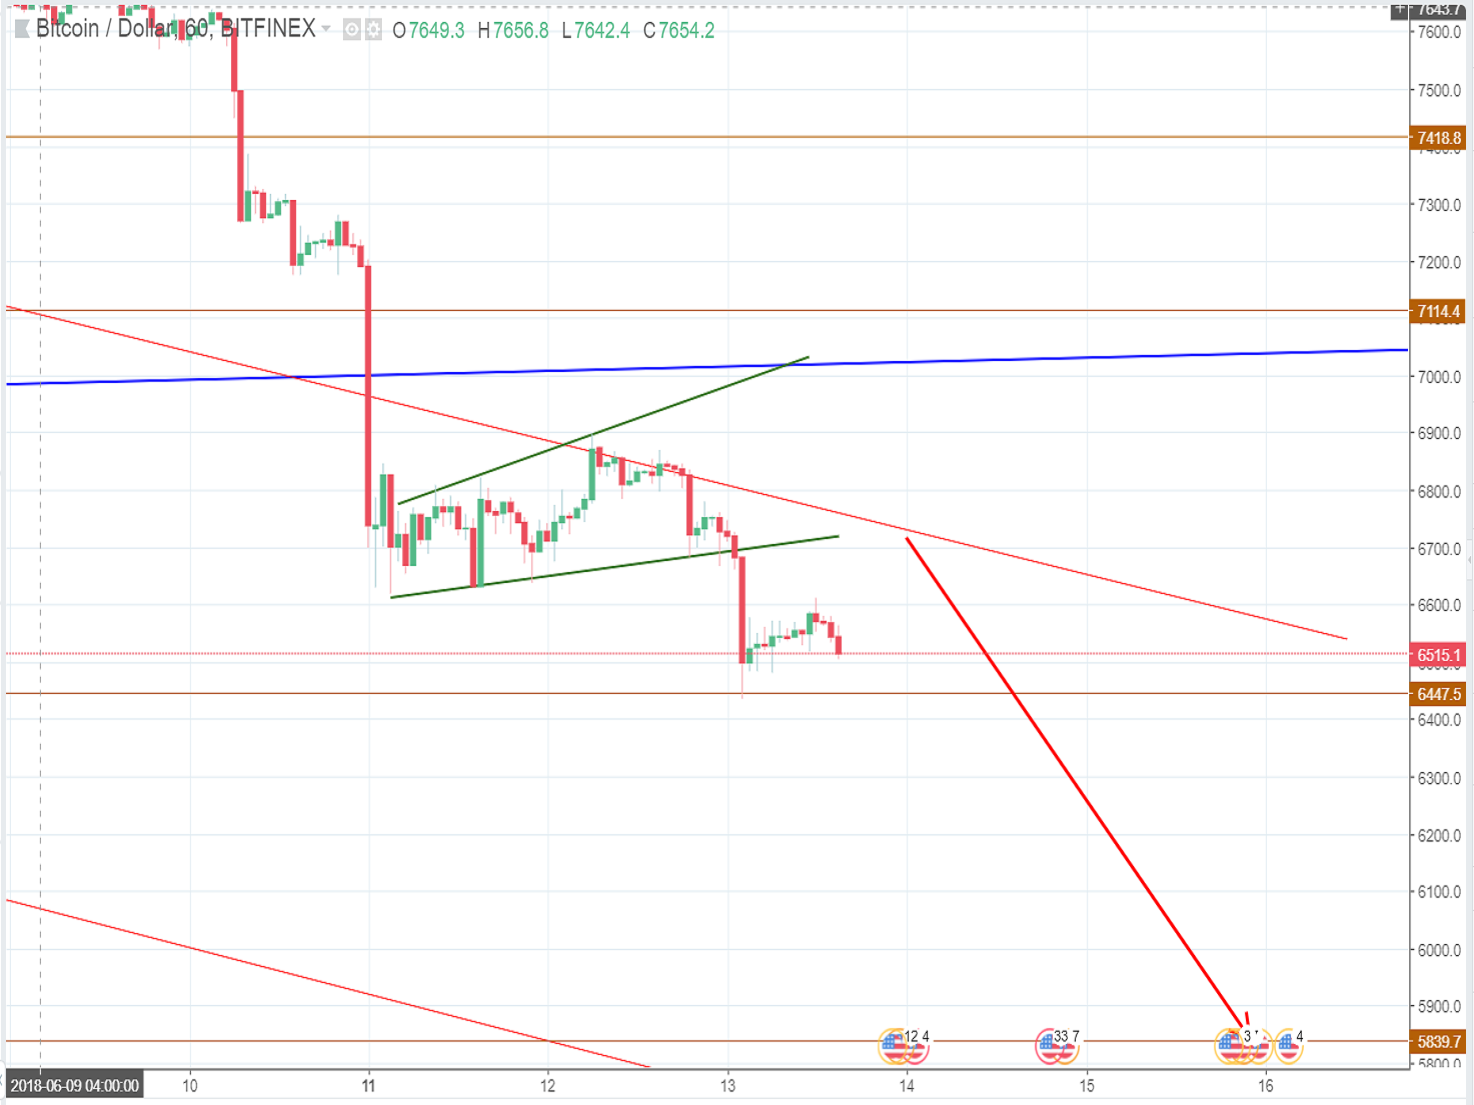 Bitcoin price on Wednesday (June 13th)